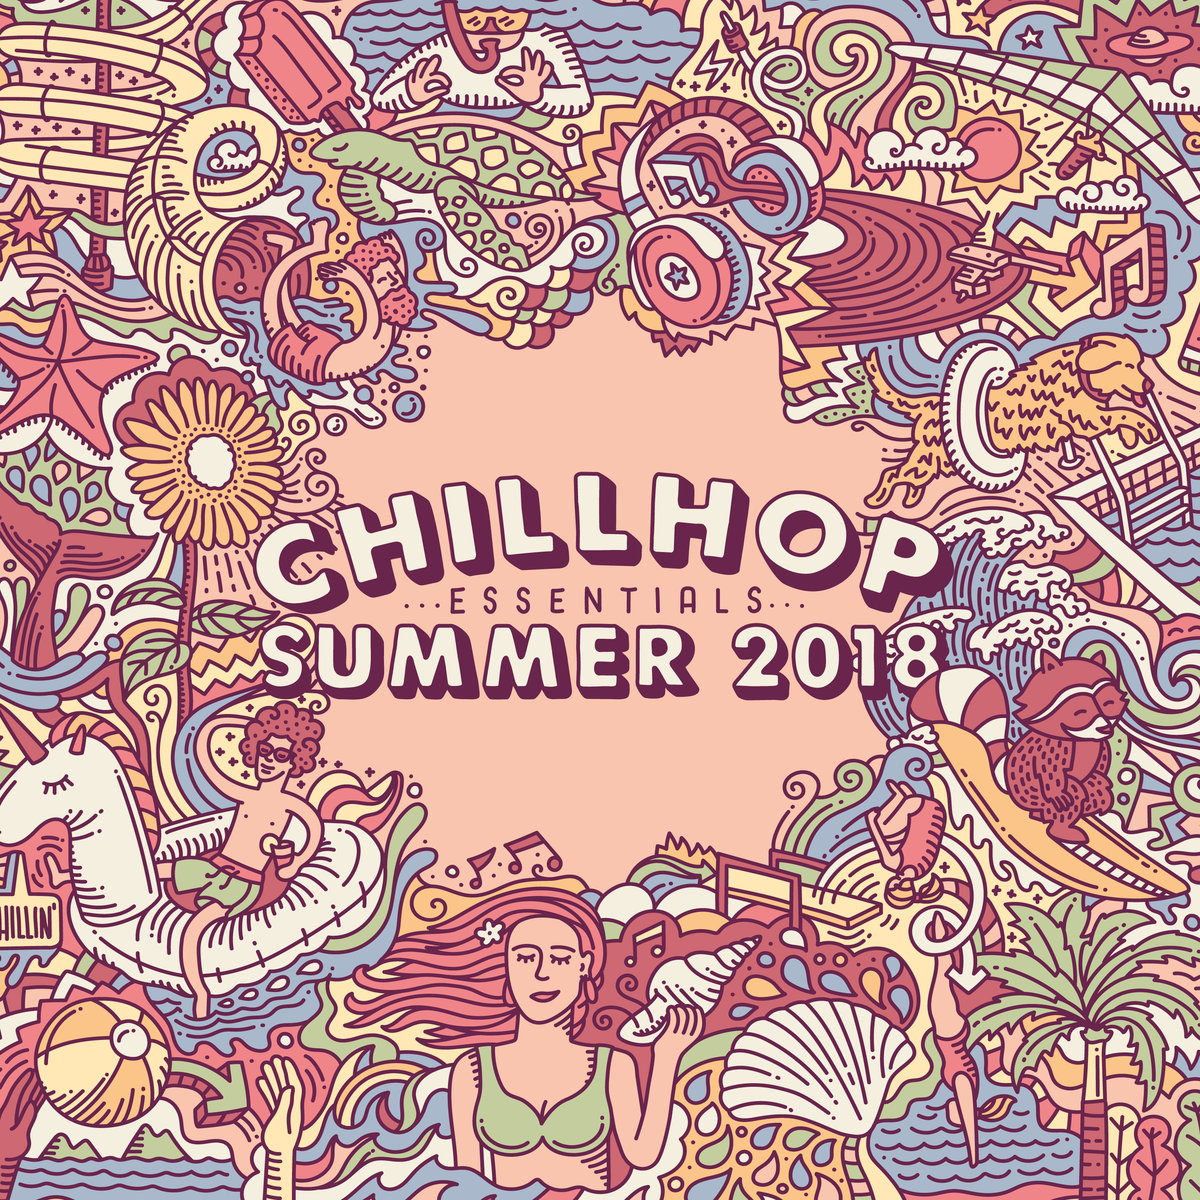 Chillhop Essentials - Summer 2018 | Full Album Stream - Vinyl Tipp